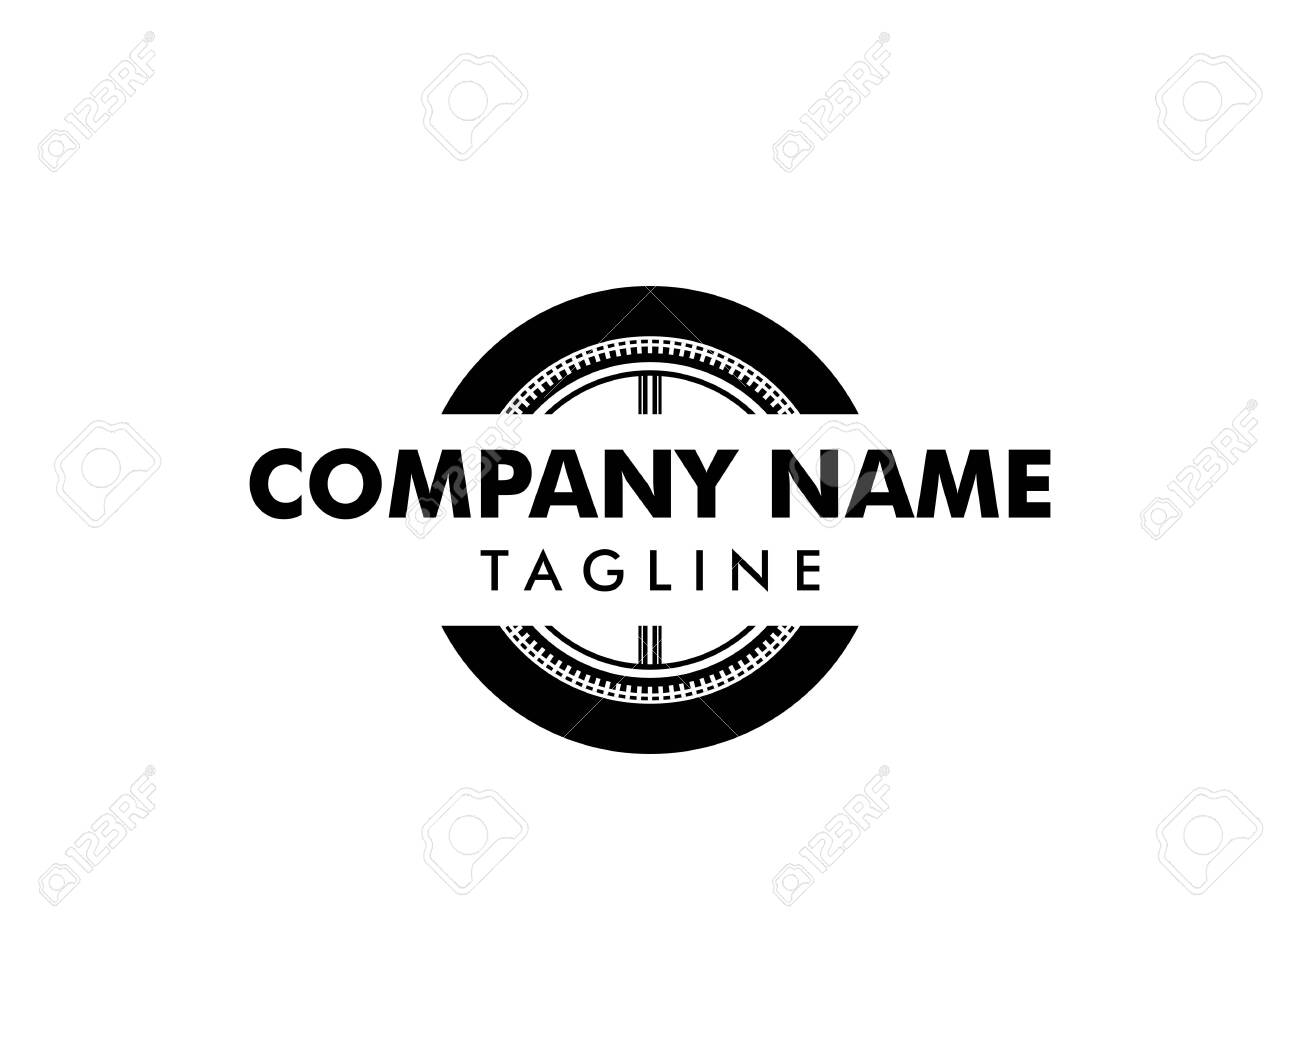 Automotive Tyre Shop Logo Design Inspiration Vector Royalty Free Cliparts Vectors And Stock Illustration Image 131291922